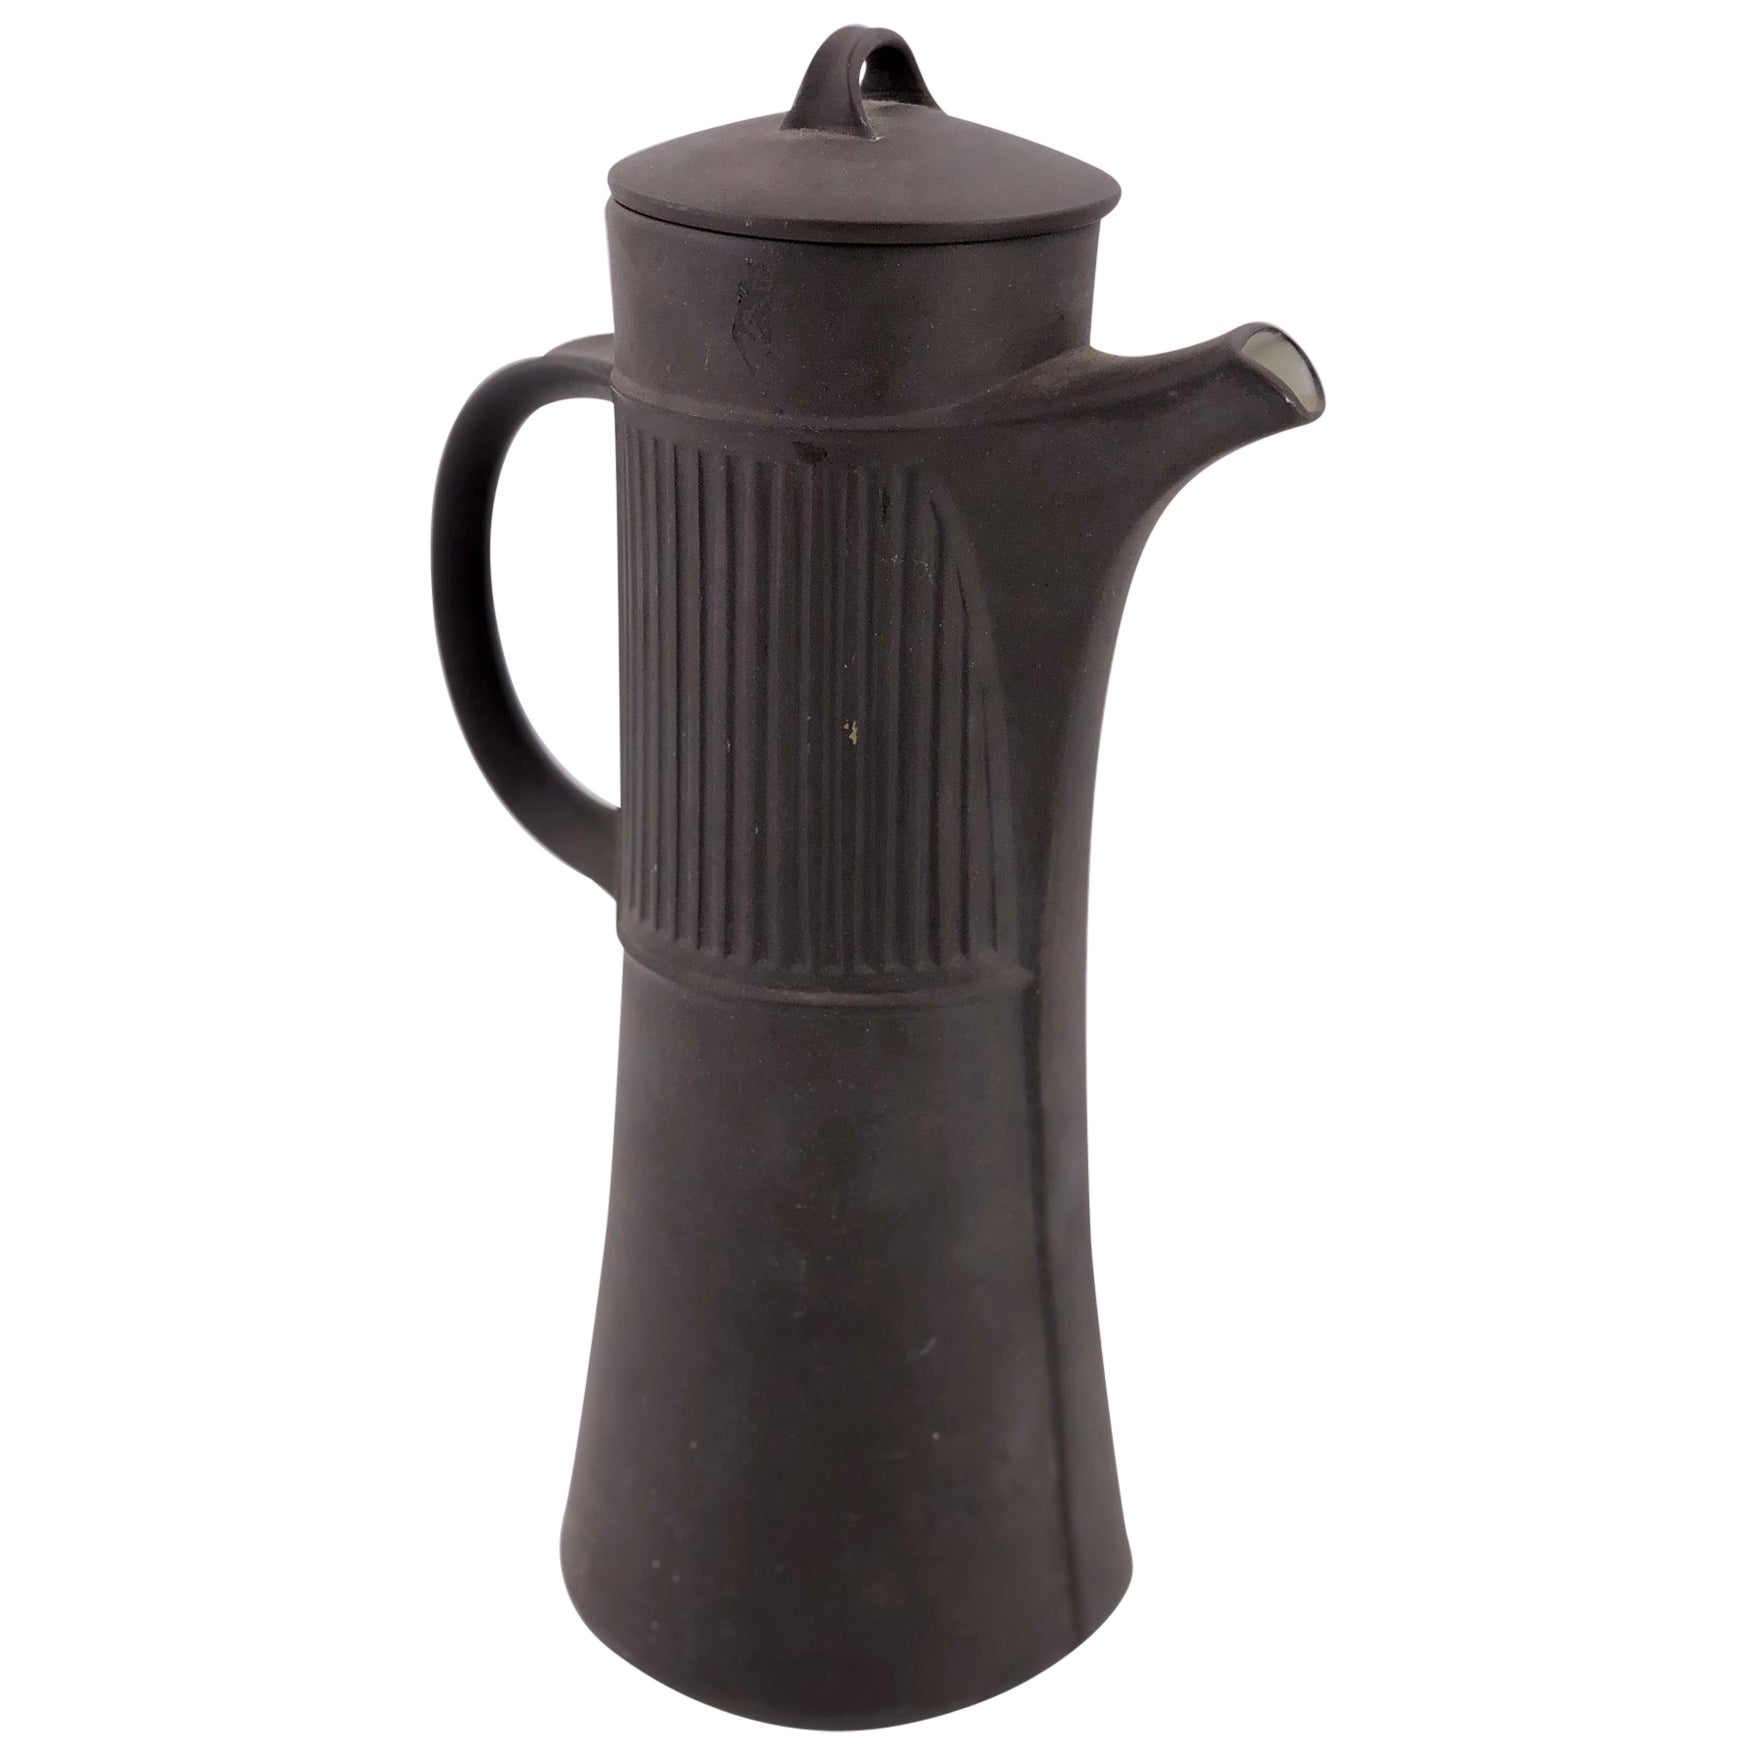 Dansk Design Coffee Pot by Quistgaard